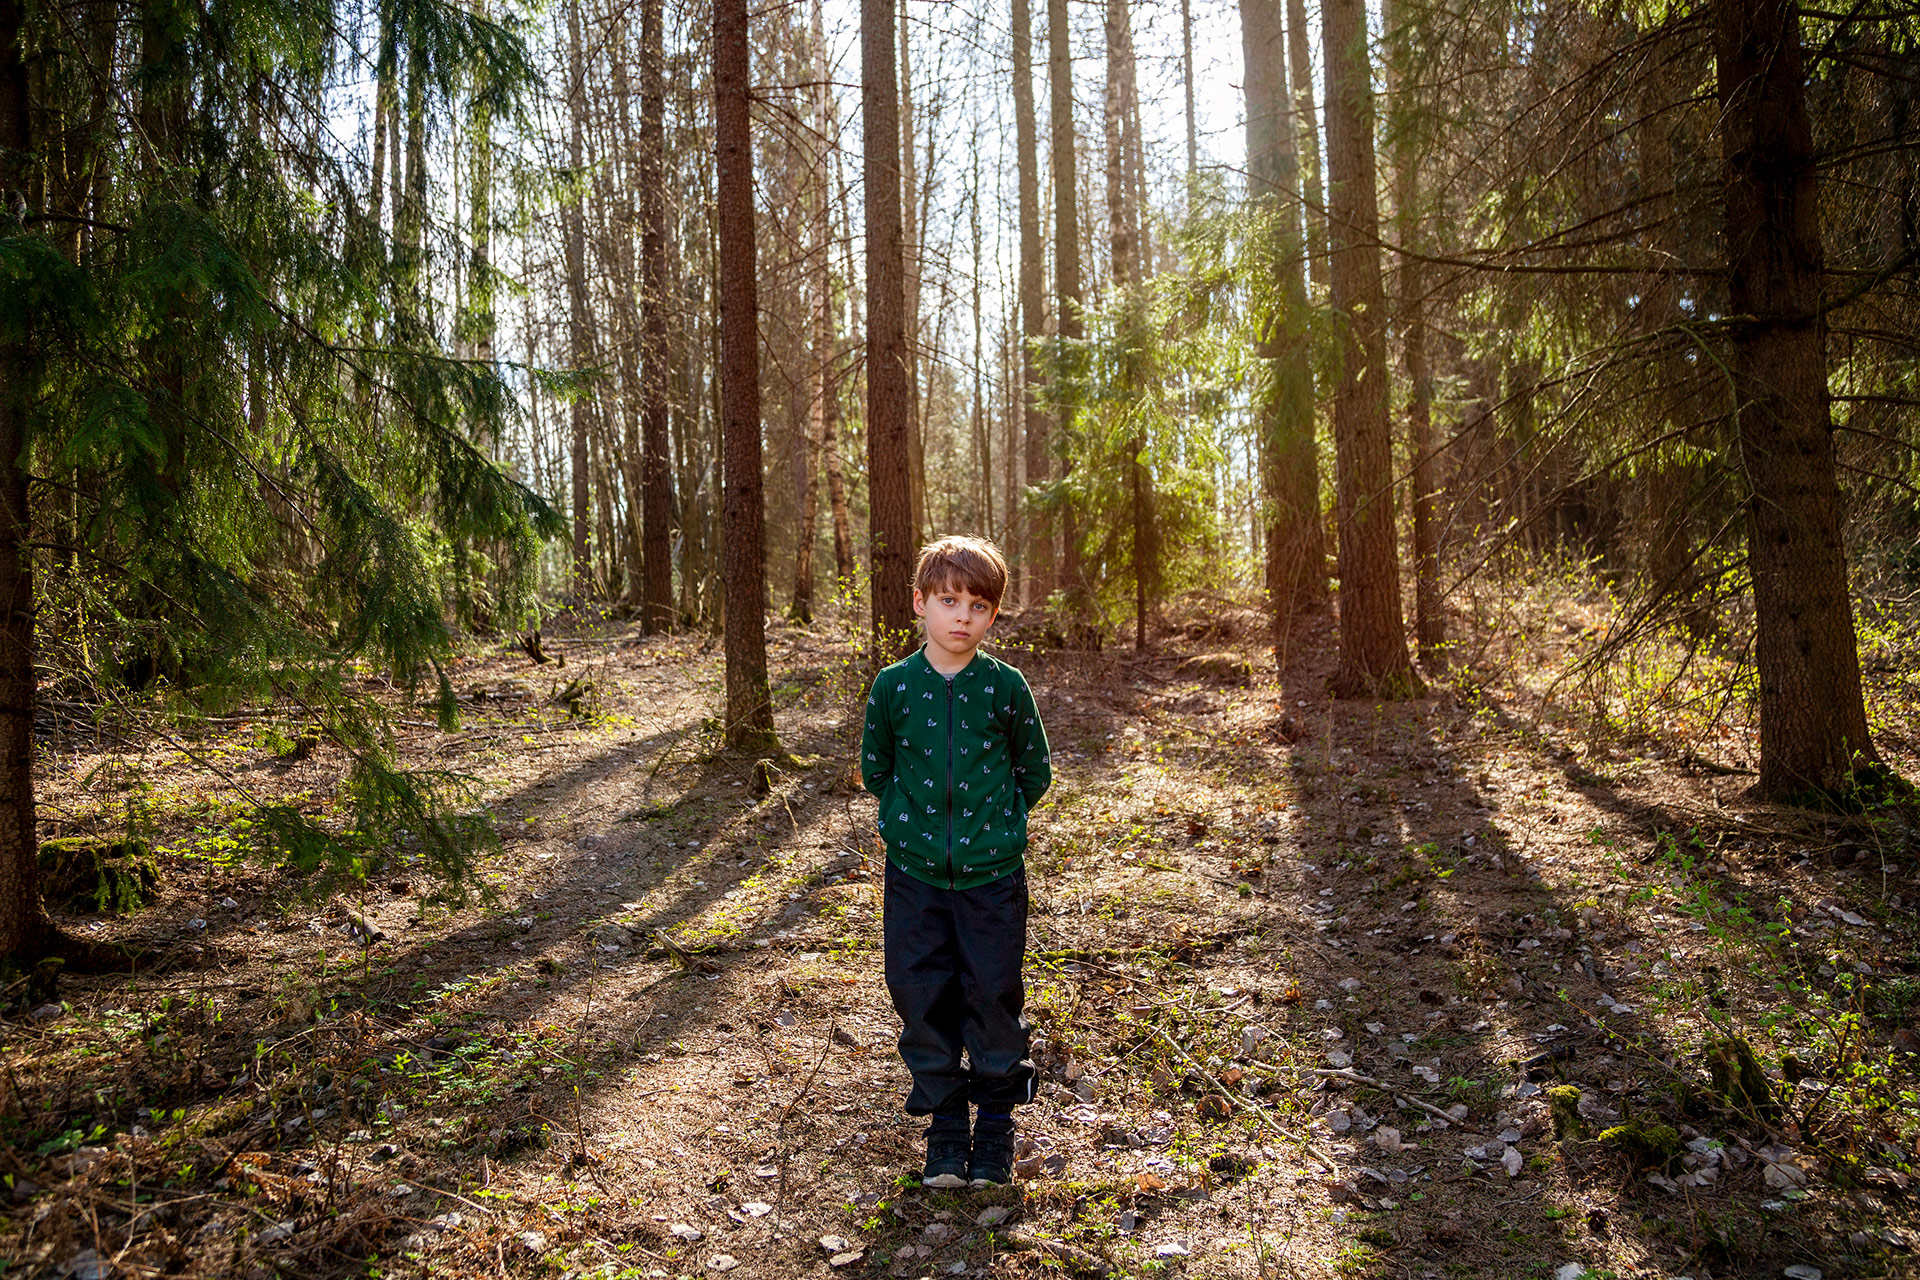 Portrait of a boy standing in a forrest